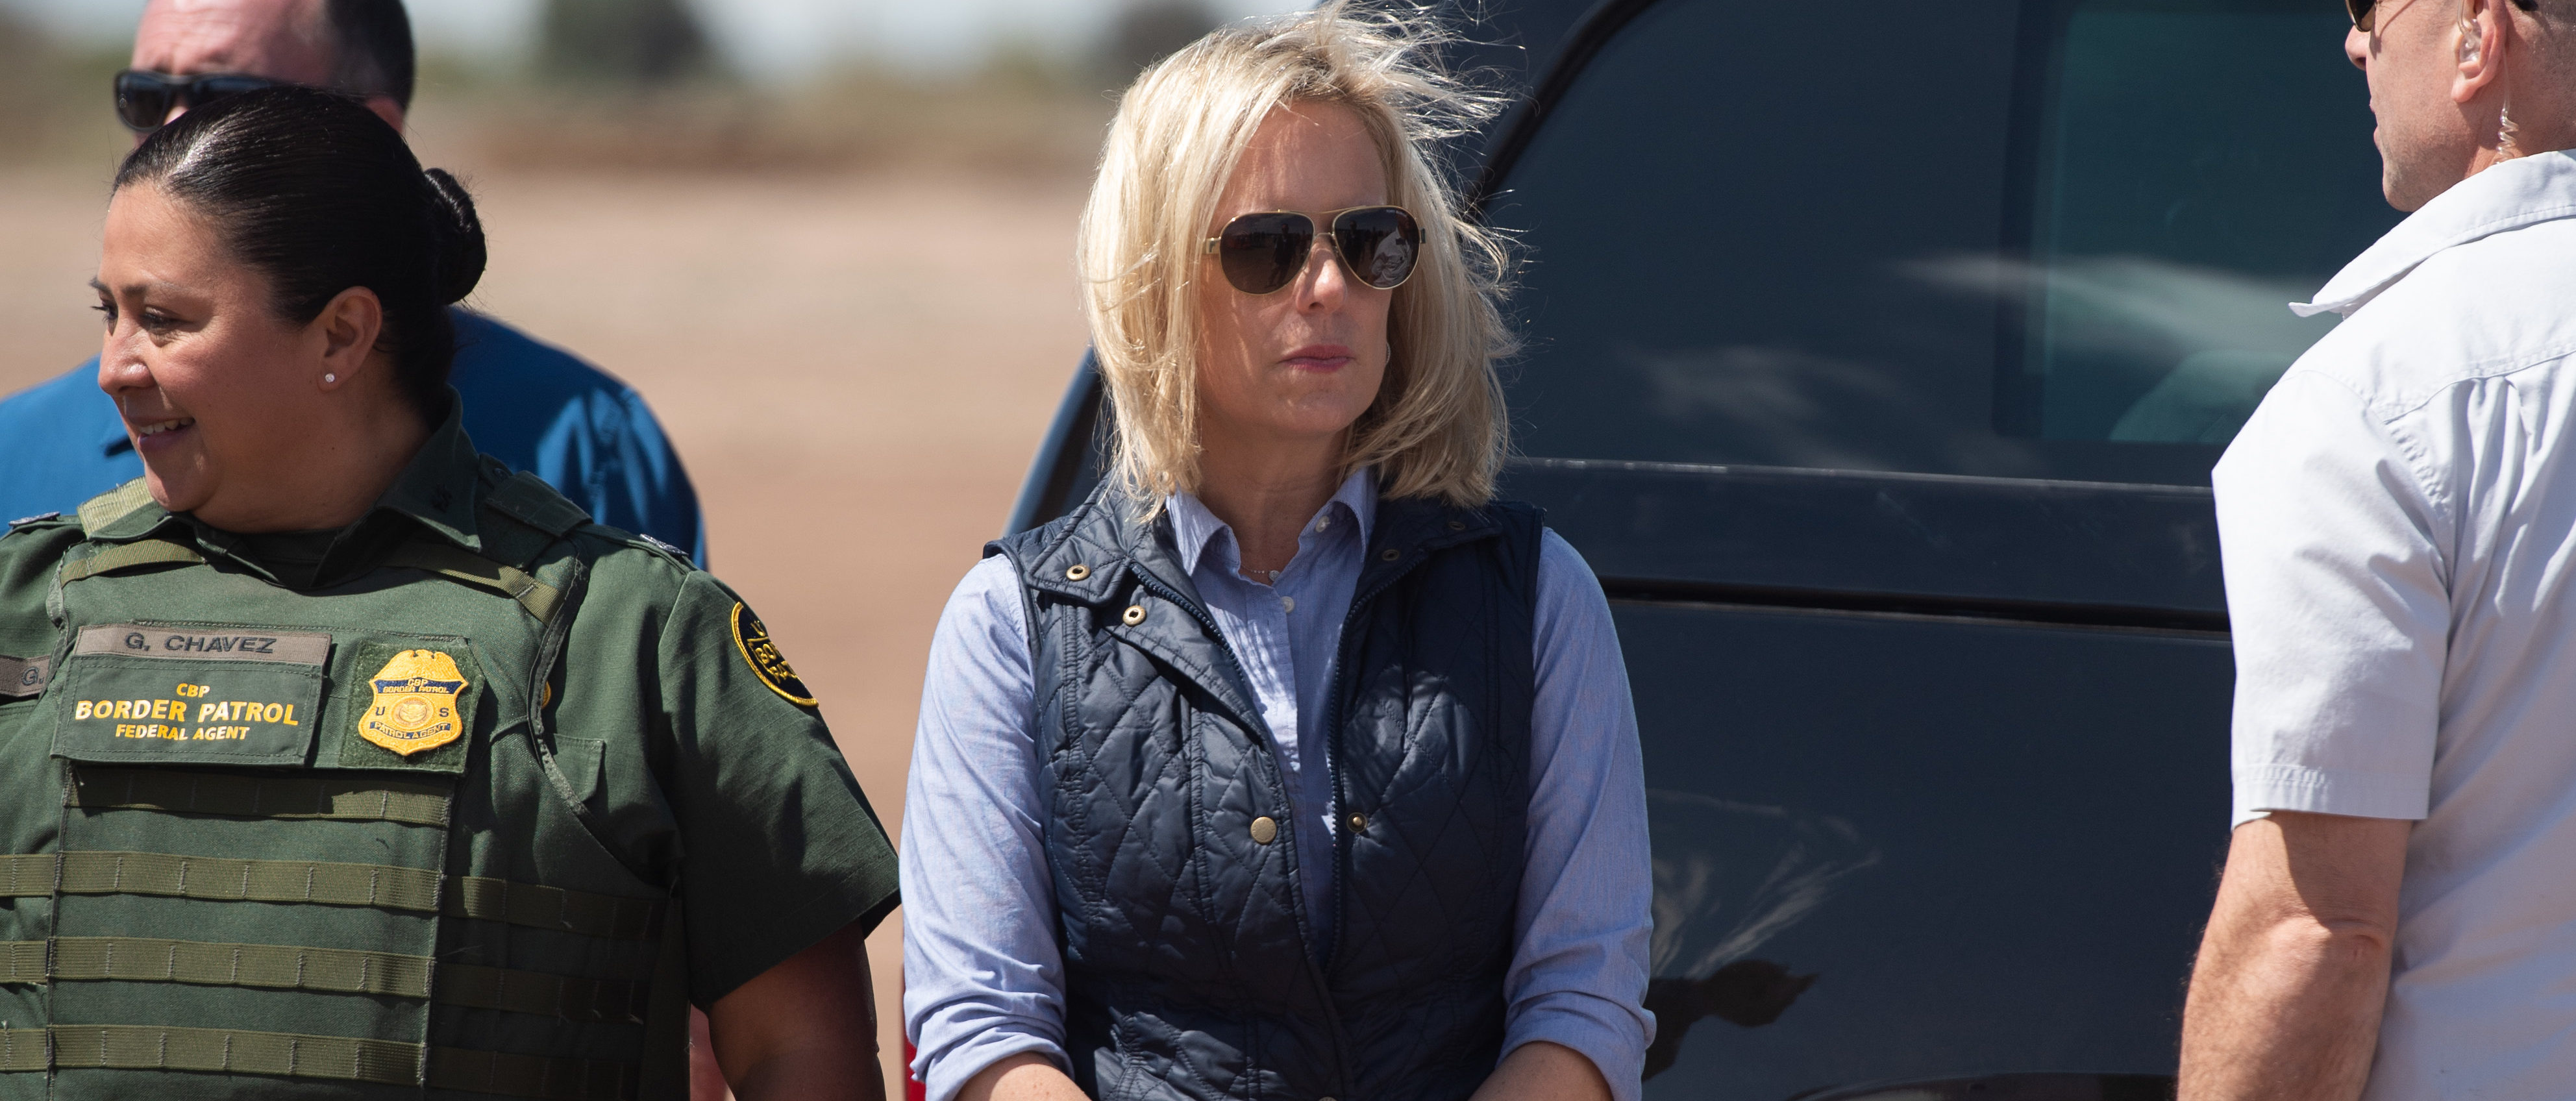 "In this photo taken on April 5, 2019, Secretary of Homeland Security Kirstjen Nielsen waits for US President Donald Trump as he arrives to tour the border wall between the United States and Mexico in Calexico, California. - US President Donald Trump on Sunday, April 7, 2019 announced Homeland Security Secretary Kirstjen Nielsen, the front-line defender of the administration's controversial immigration policies, would leave her position. ""Secretary of Homeland Security Kirstjen Nielsen will be leaving her position, and I would like to thank her for her service,"" Trump tweeted. He added US Customs and Border Protection Commissioner Kevin McAleenan would become acting secretary. (Photo by SAUL LOEB / AFP) (Photo credit should read SAUL LOEB/AFP/Getty Images)"